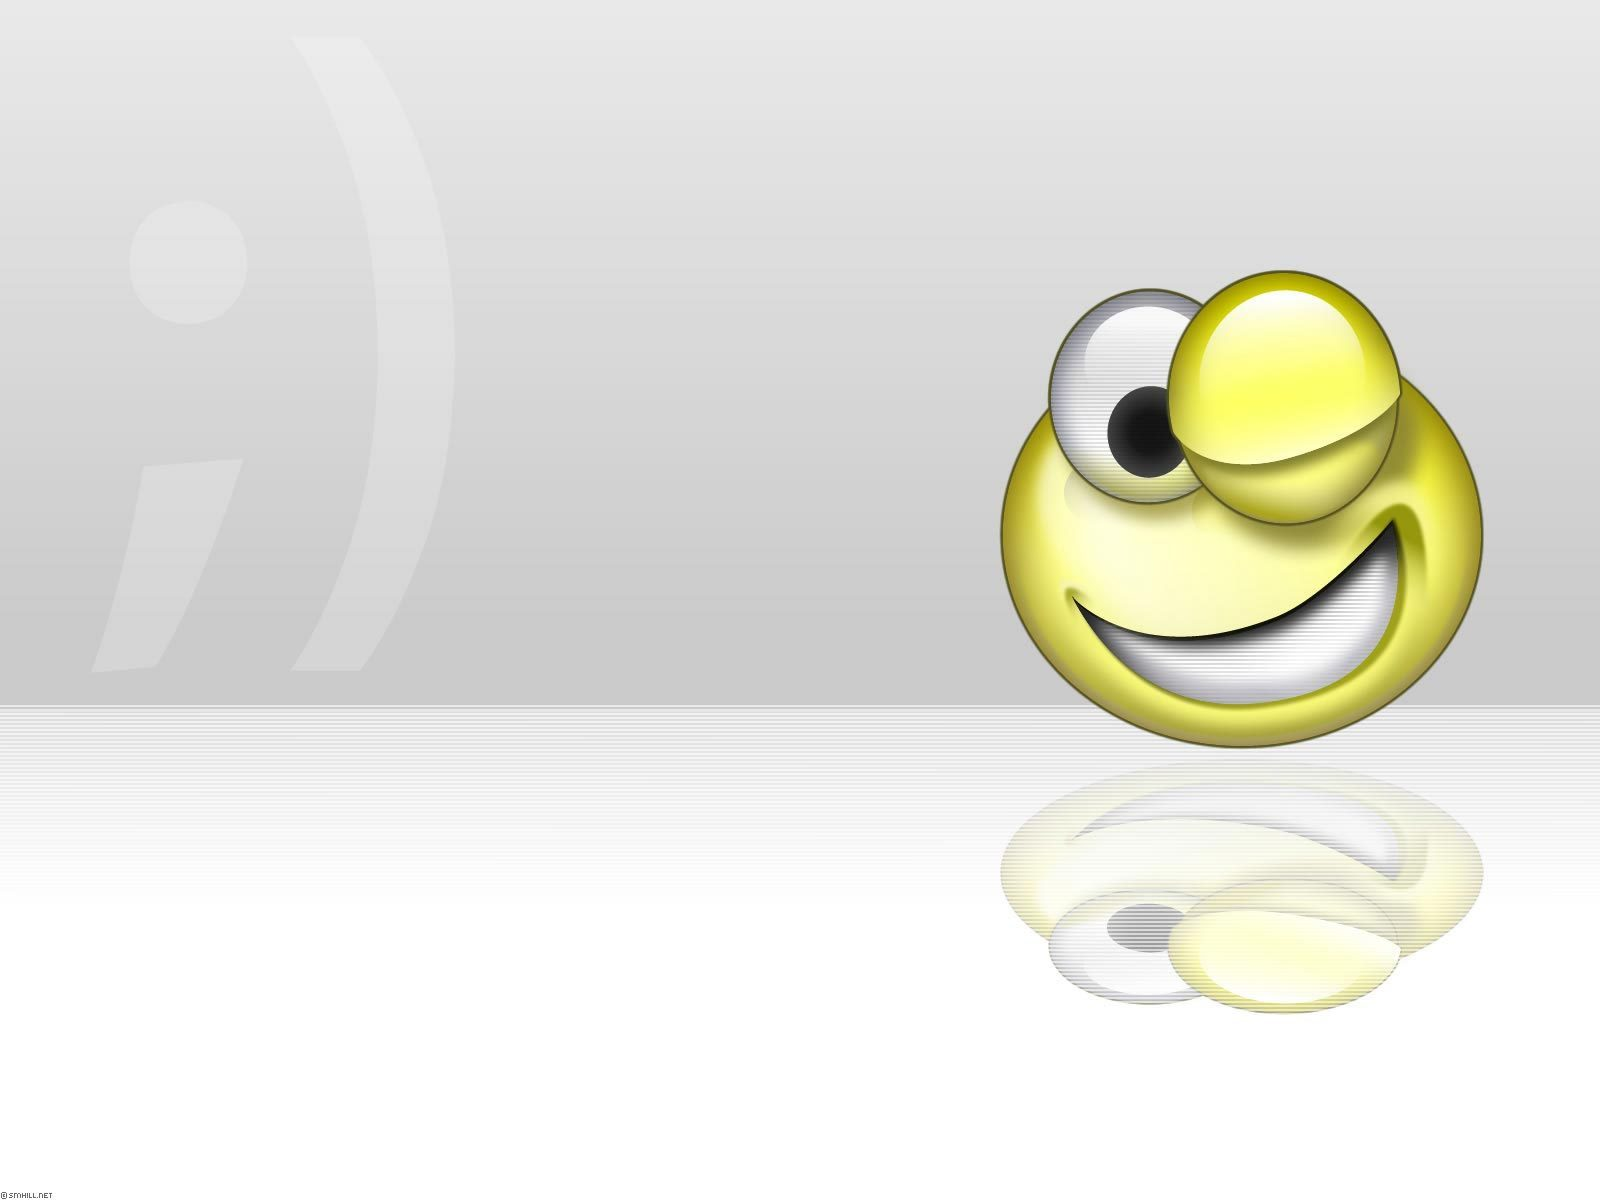 Smiley images Smiley HD wallpaper and background photos 1600x1200